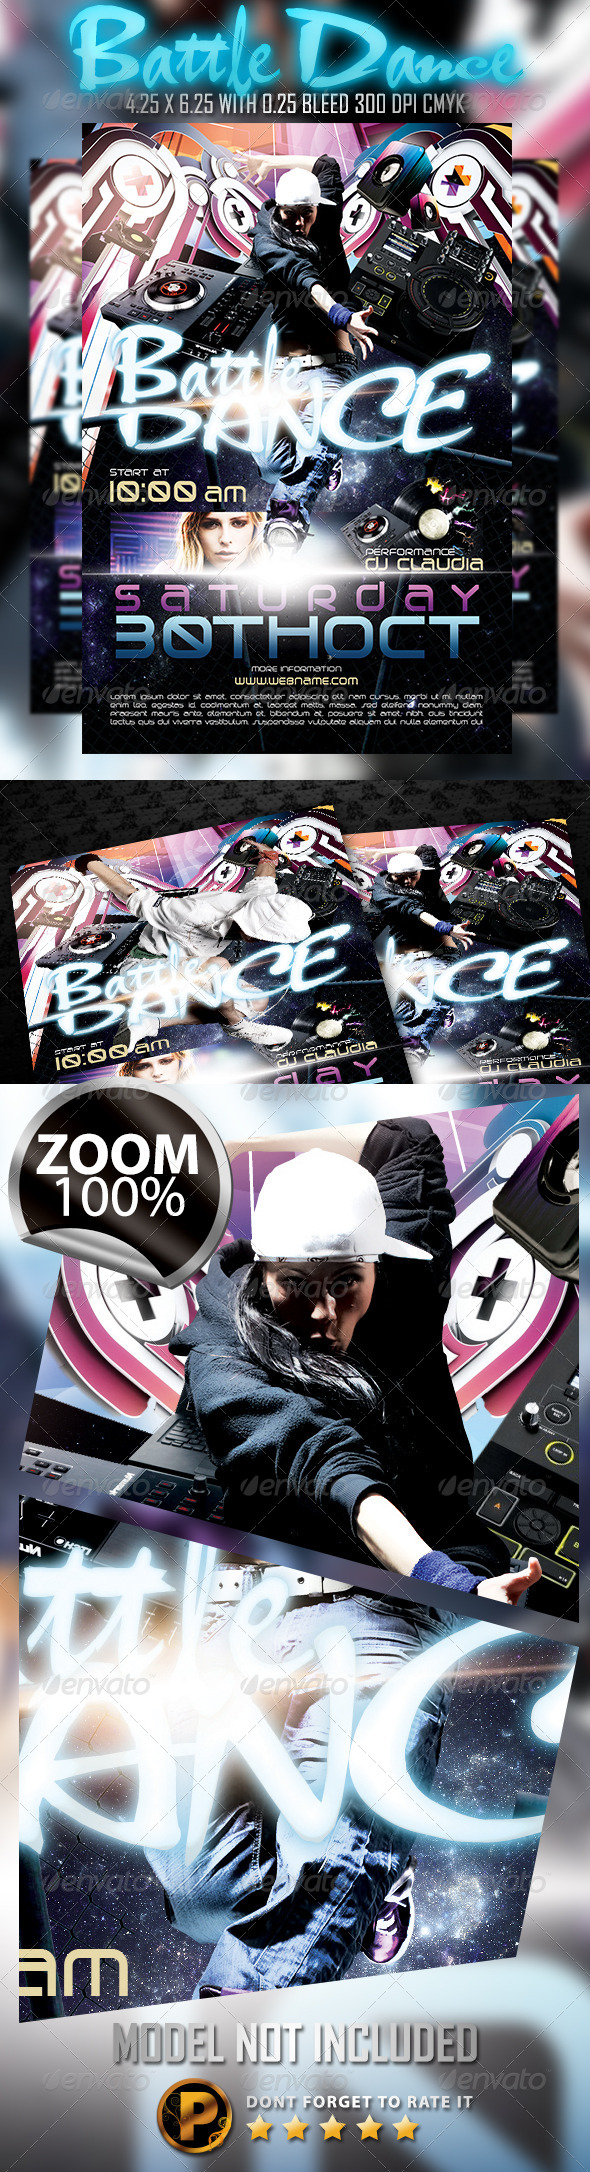 Battle Dance Flyer Template - Clubs & Parties Events